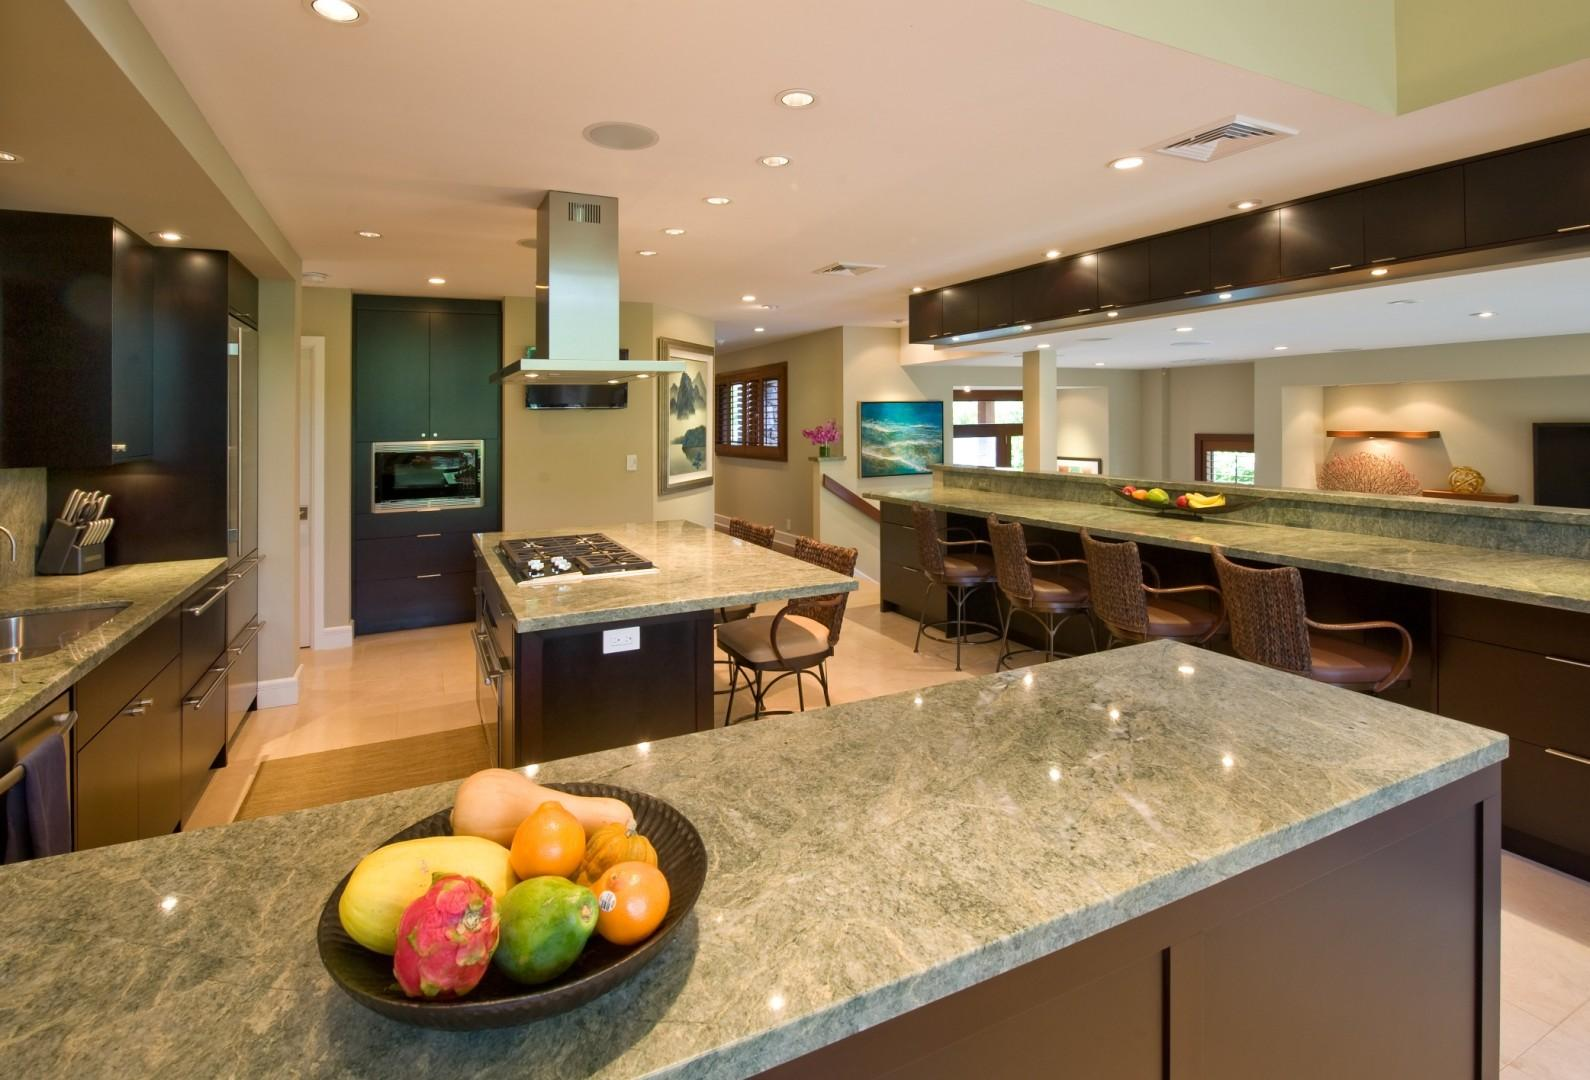 Fully equipped gourmet kitchen.